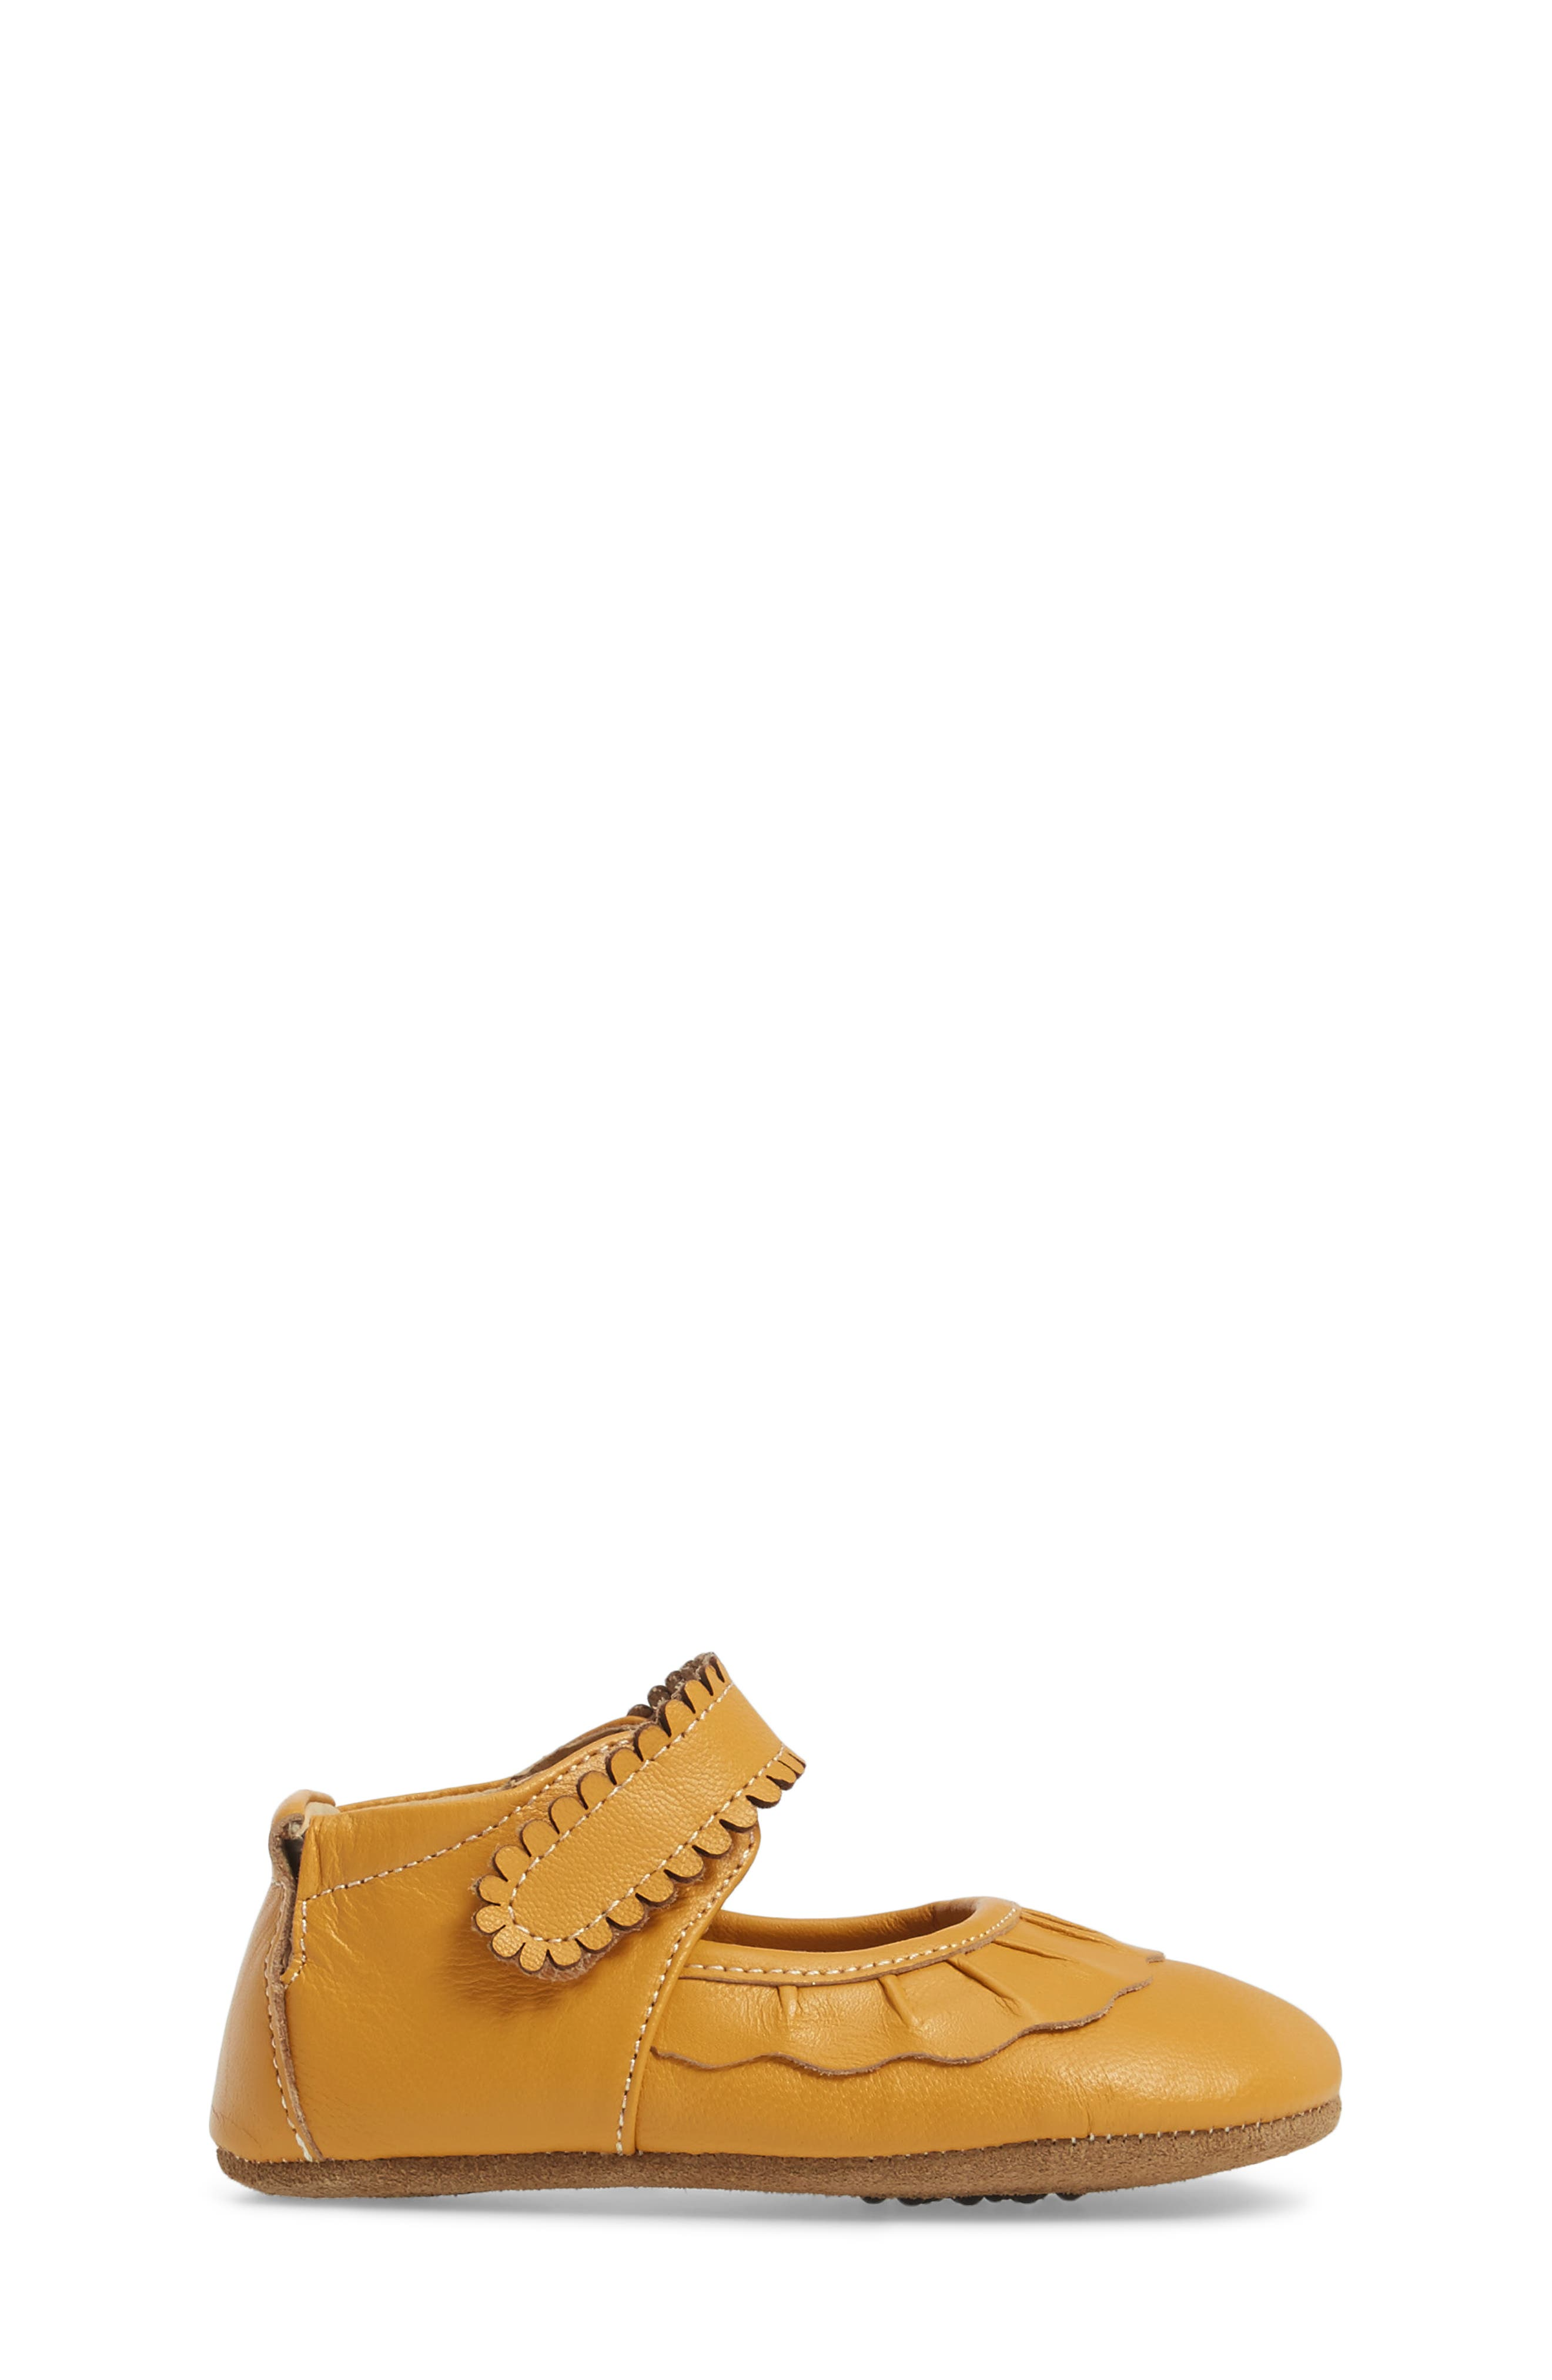 'Ruche' Mary Jane Crib Shoe,                             Alternate thumbnail 3, color,                             BUTTERSCOTCH LEATHER